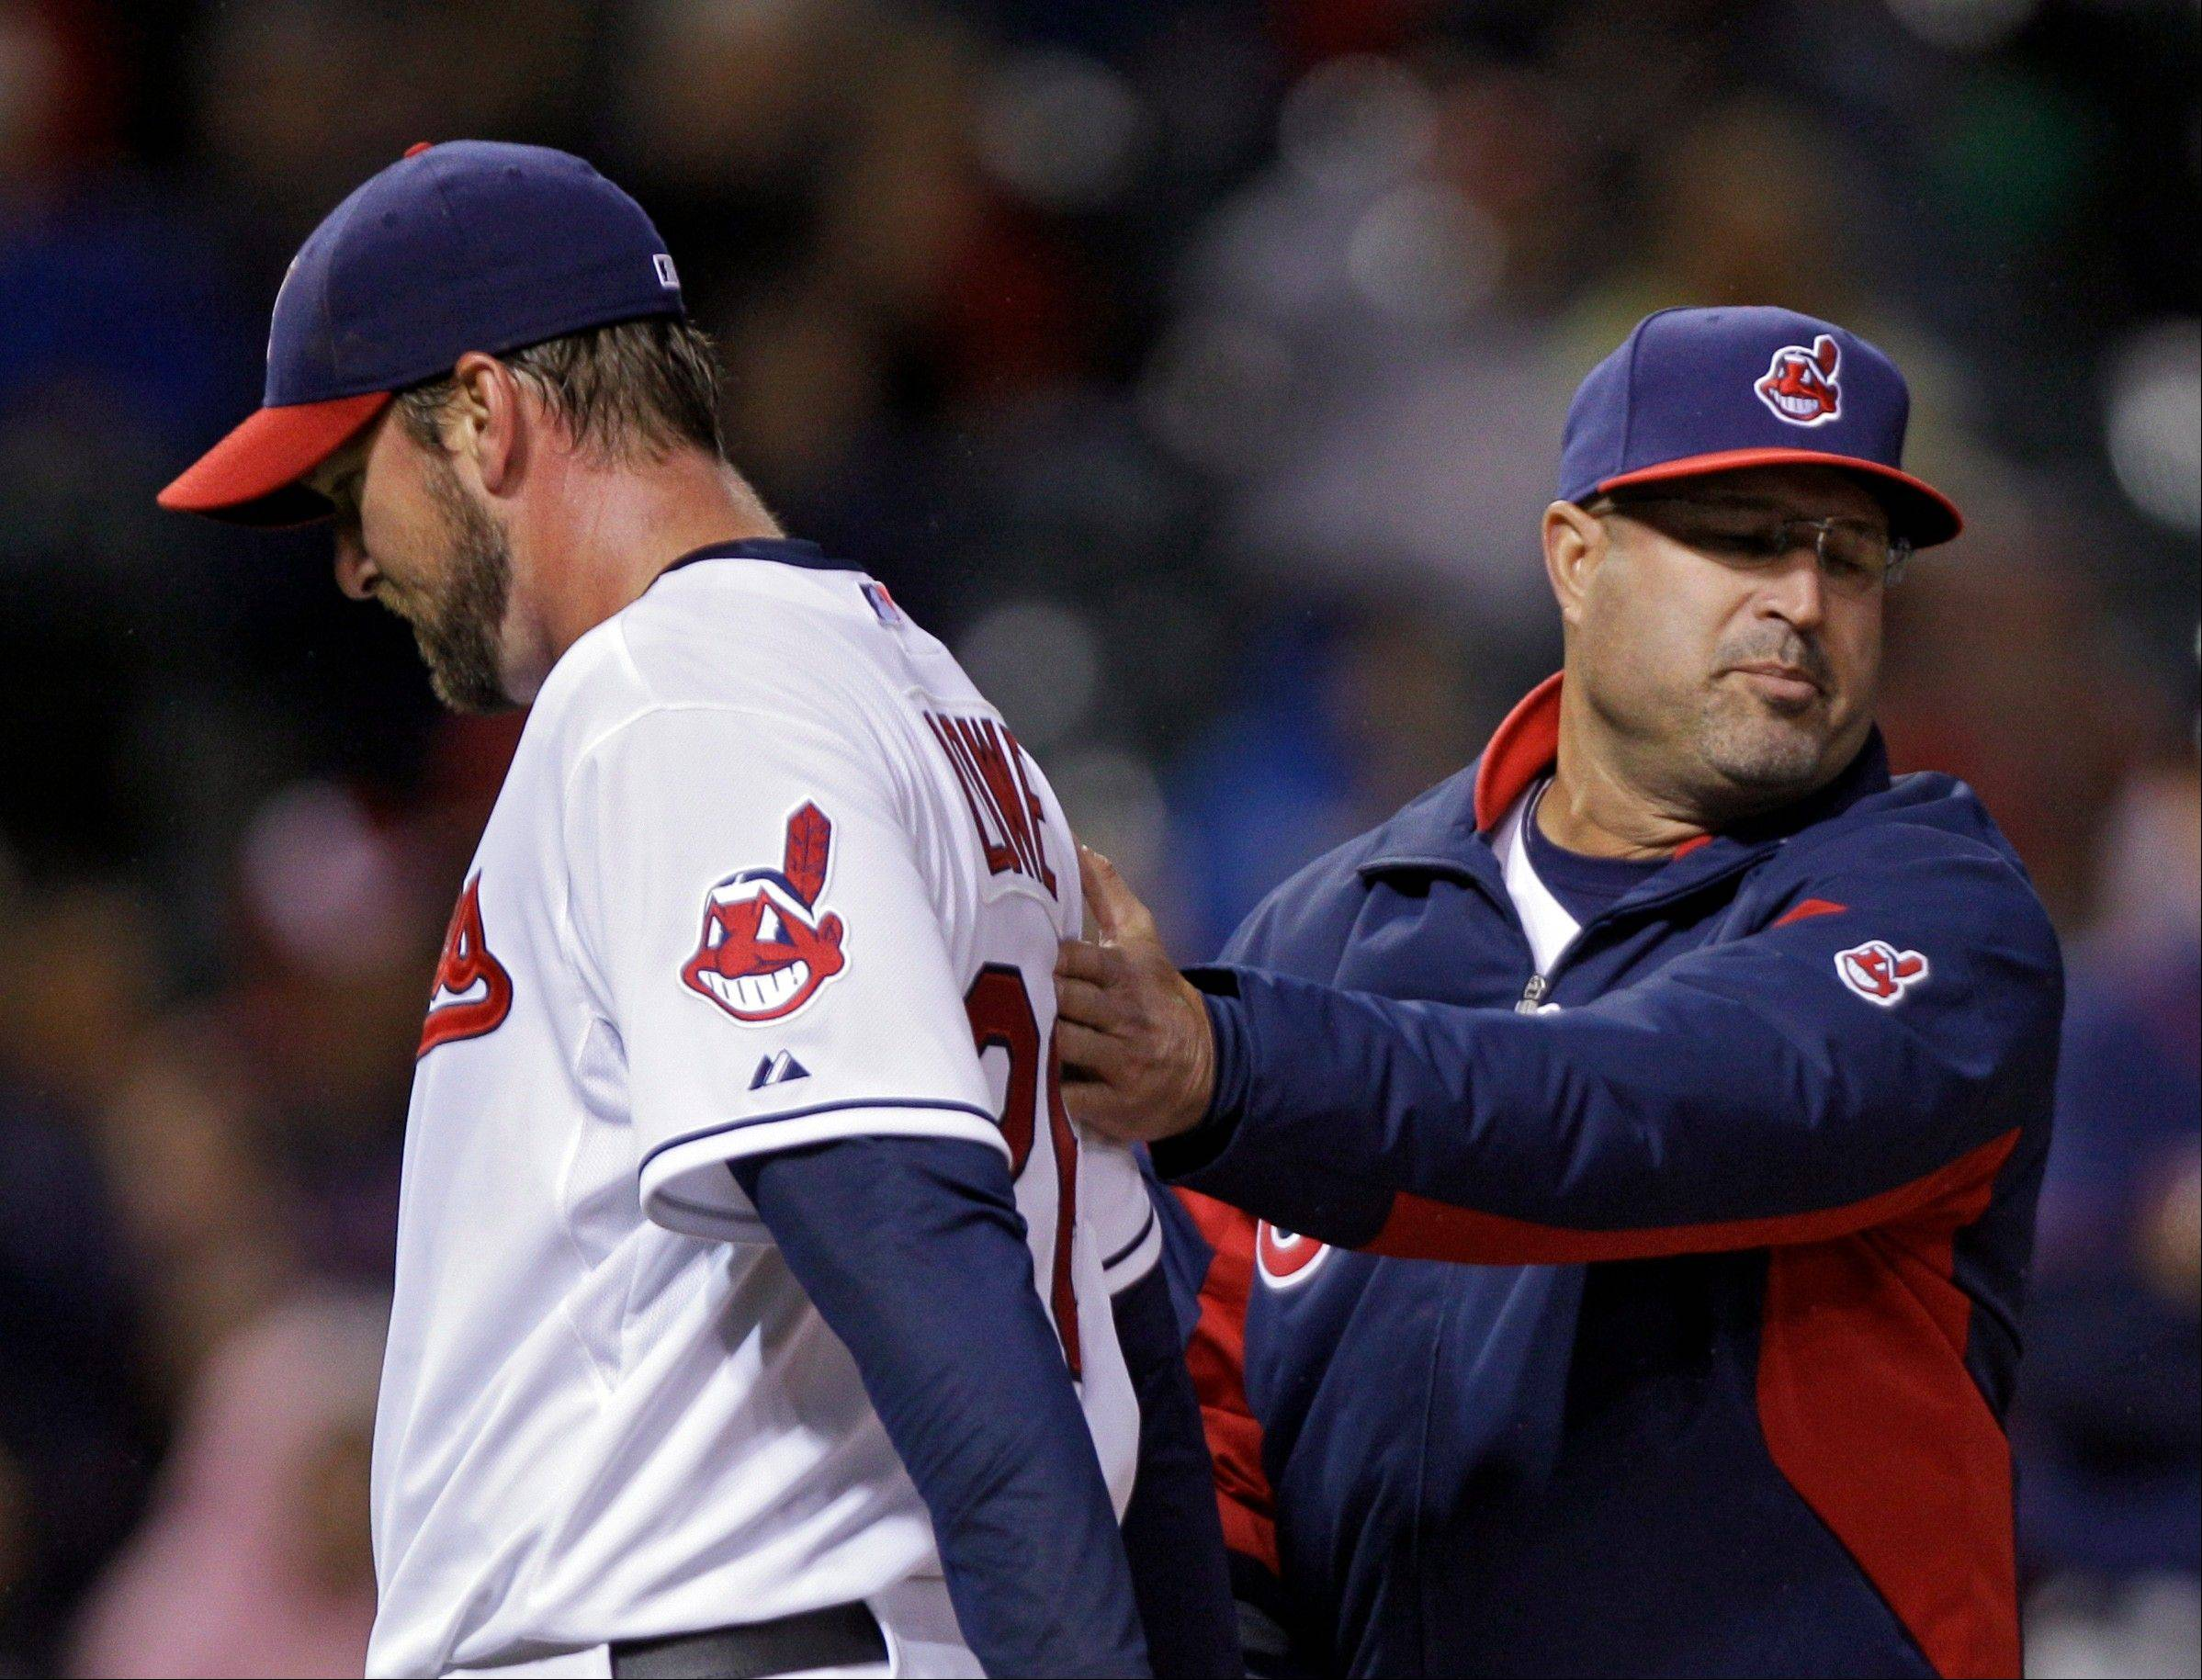 Cleveland Indians manager Manny Acta gives starting pitcher Derek Lowe a pat on the back as Acta brings in a reliever Friday during the seventh inning against the Minnesota Twins in Cleveland.